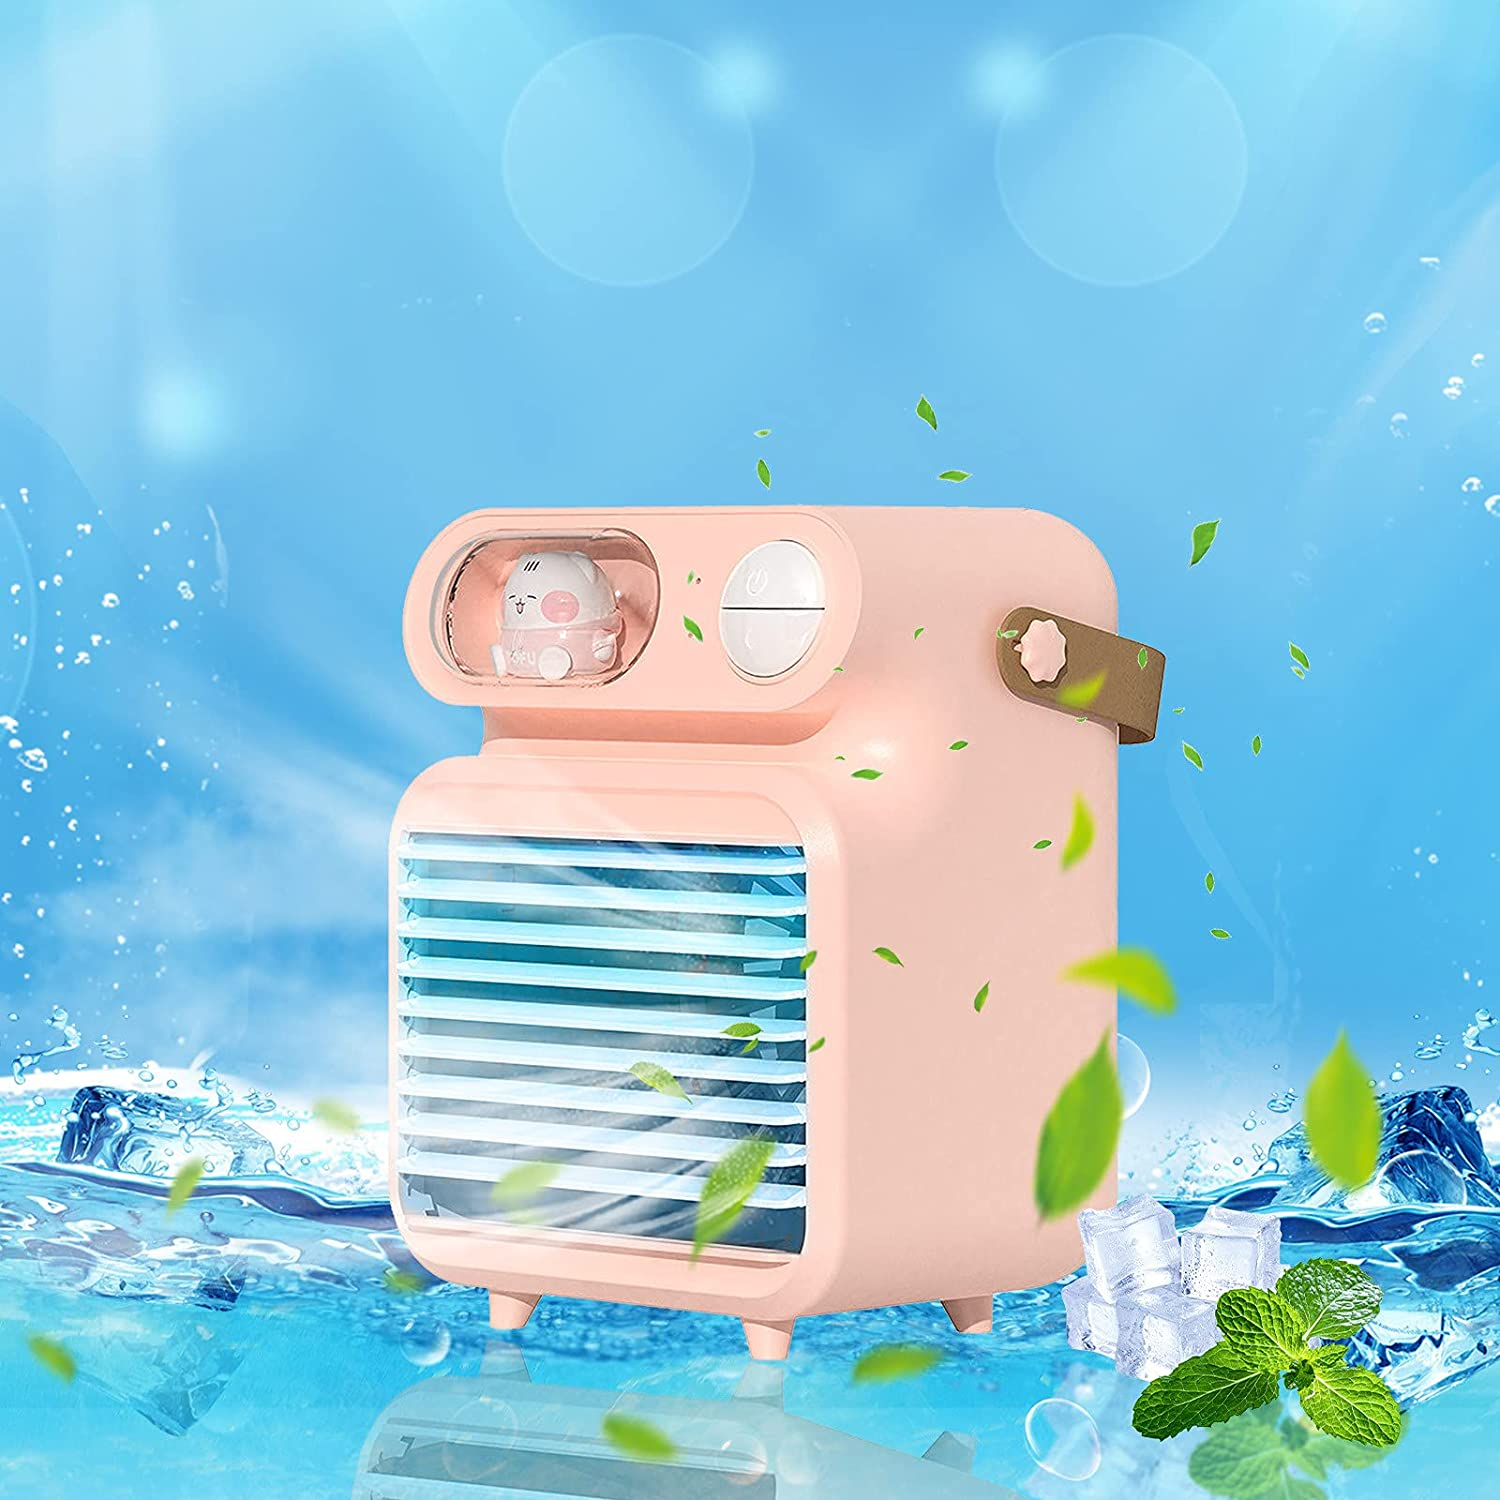 Cute Portable Air Conditioner Small Long Beach Mall Evaporative Max 81% OFF Unit C 3 AC with